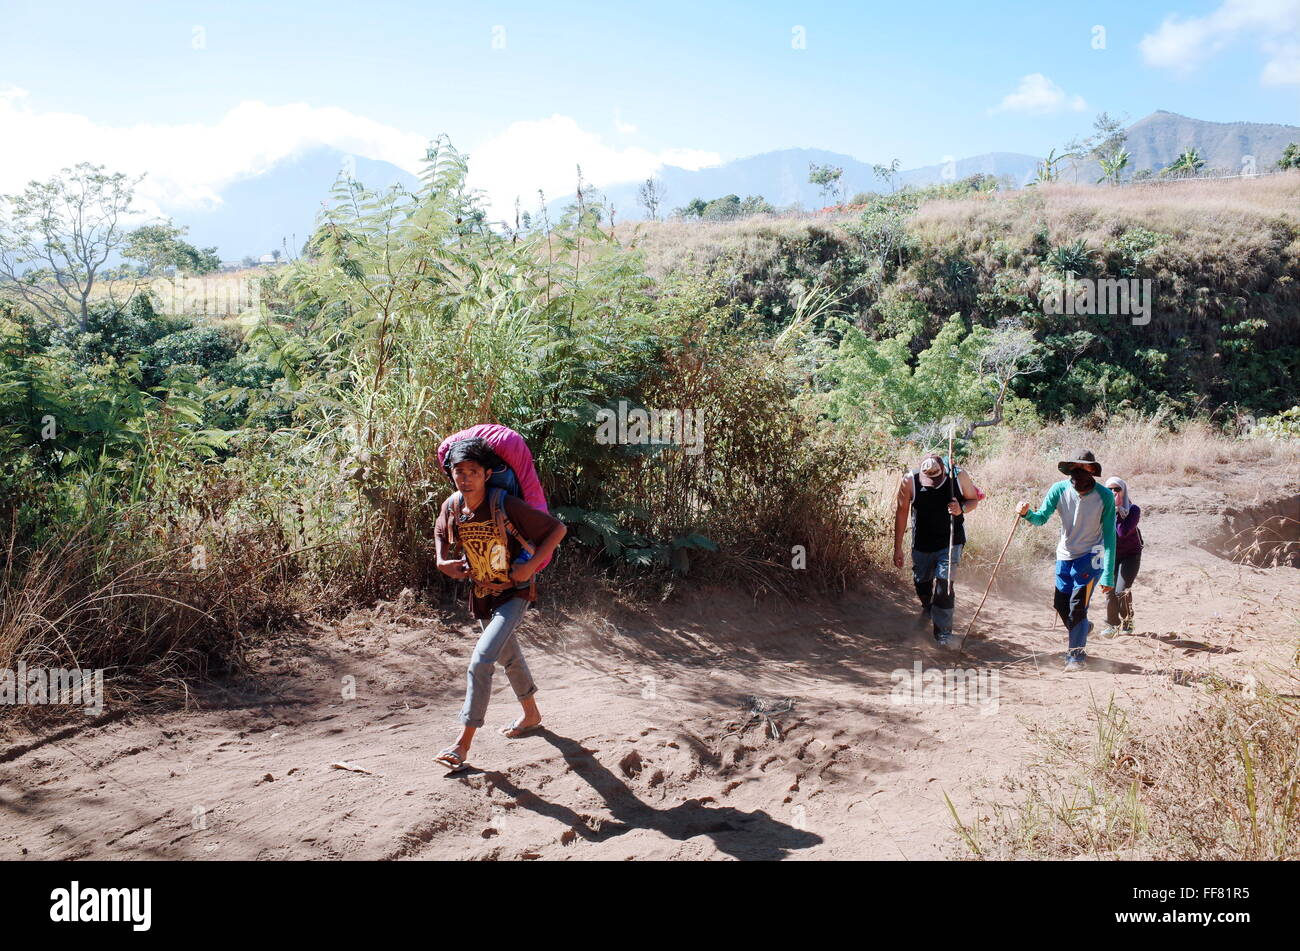 Indoneaian teenager working as a guide in Mount Rinjani - Stock Image